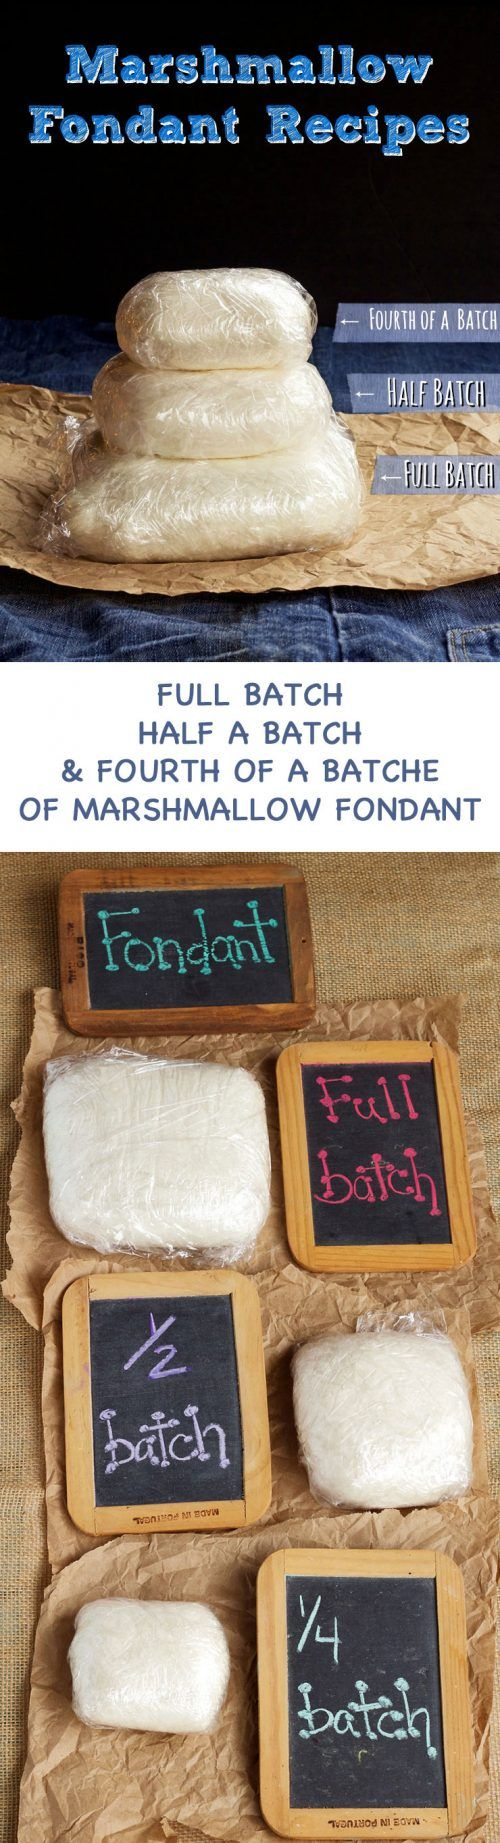 Looking for a Marshmallow Fondant Recipe - Here is Three Different Sized Batches of an Easy Fondant Recipe-Full Batch, 1:2 Batch and 1:4 Batch via www.thebearfootbaker.com